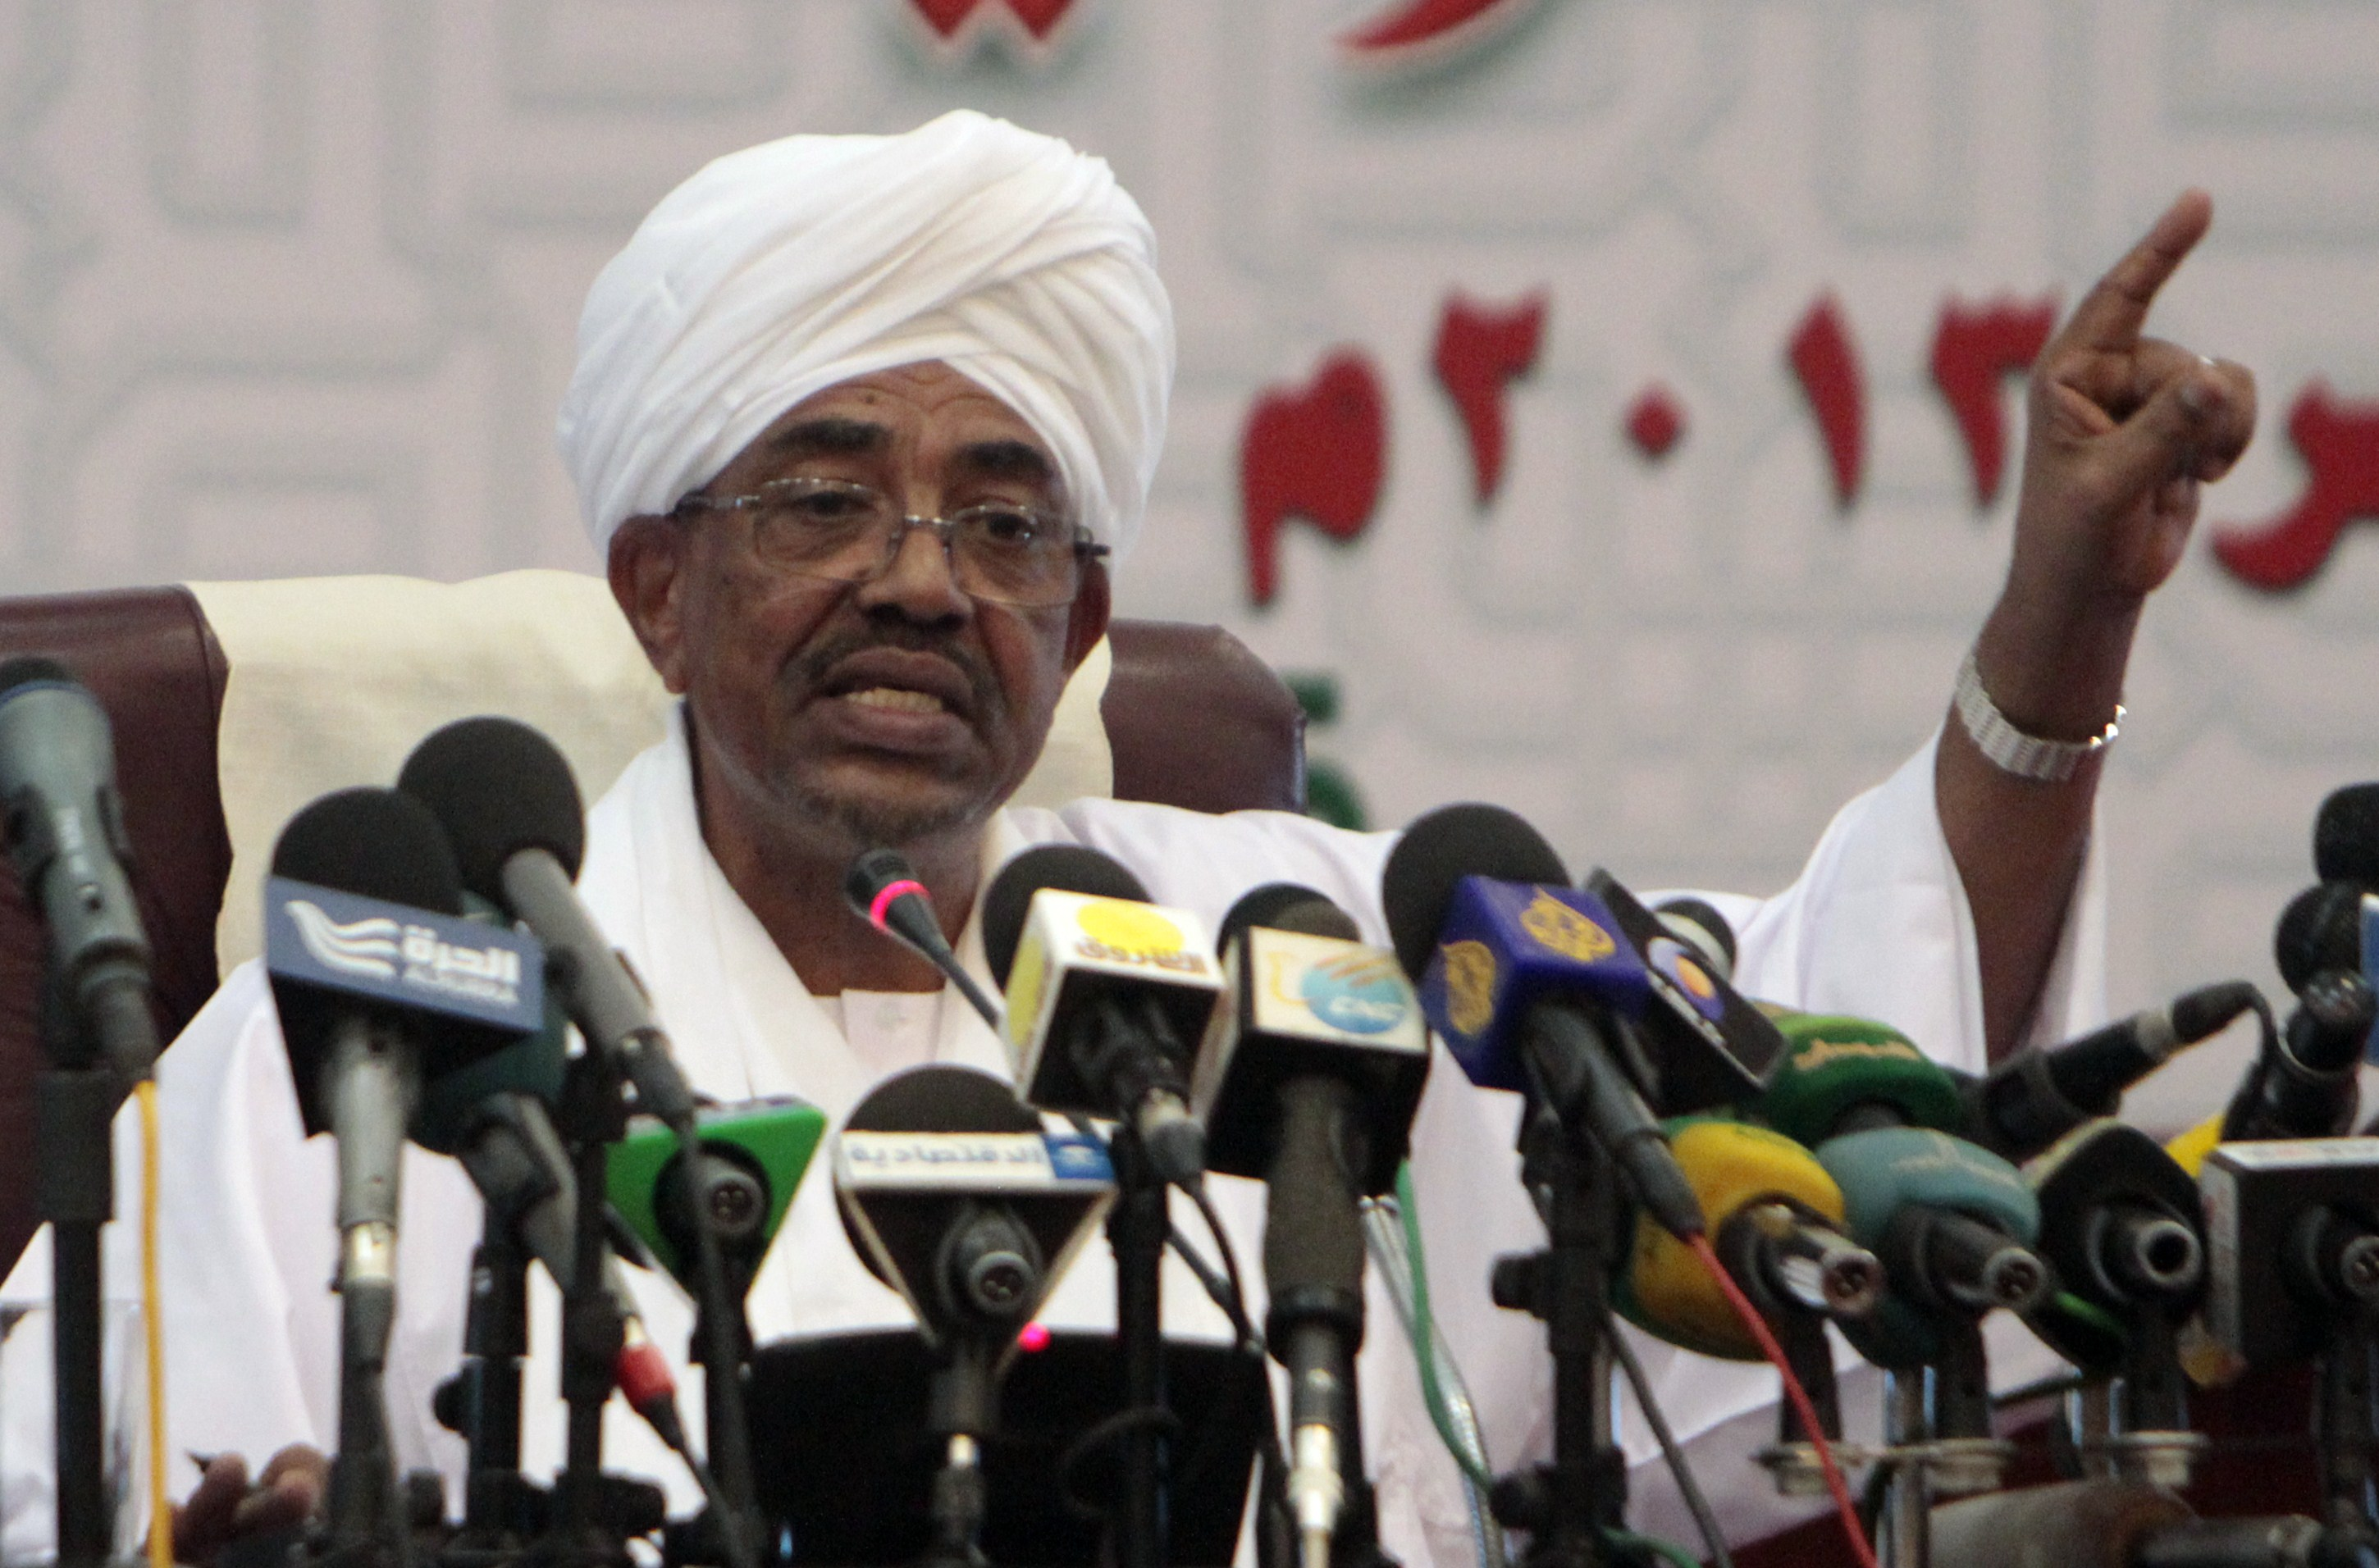 Sudanese President Omar Al-Bashir landed in Cairo on Saturday for a two-day visit which include high-level talks with President Abdel Fattah Al-Sisi. (AFP File Photo)